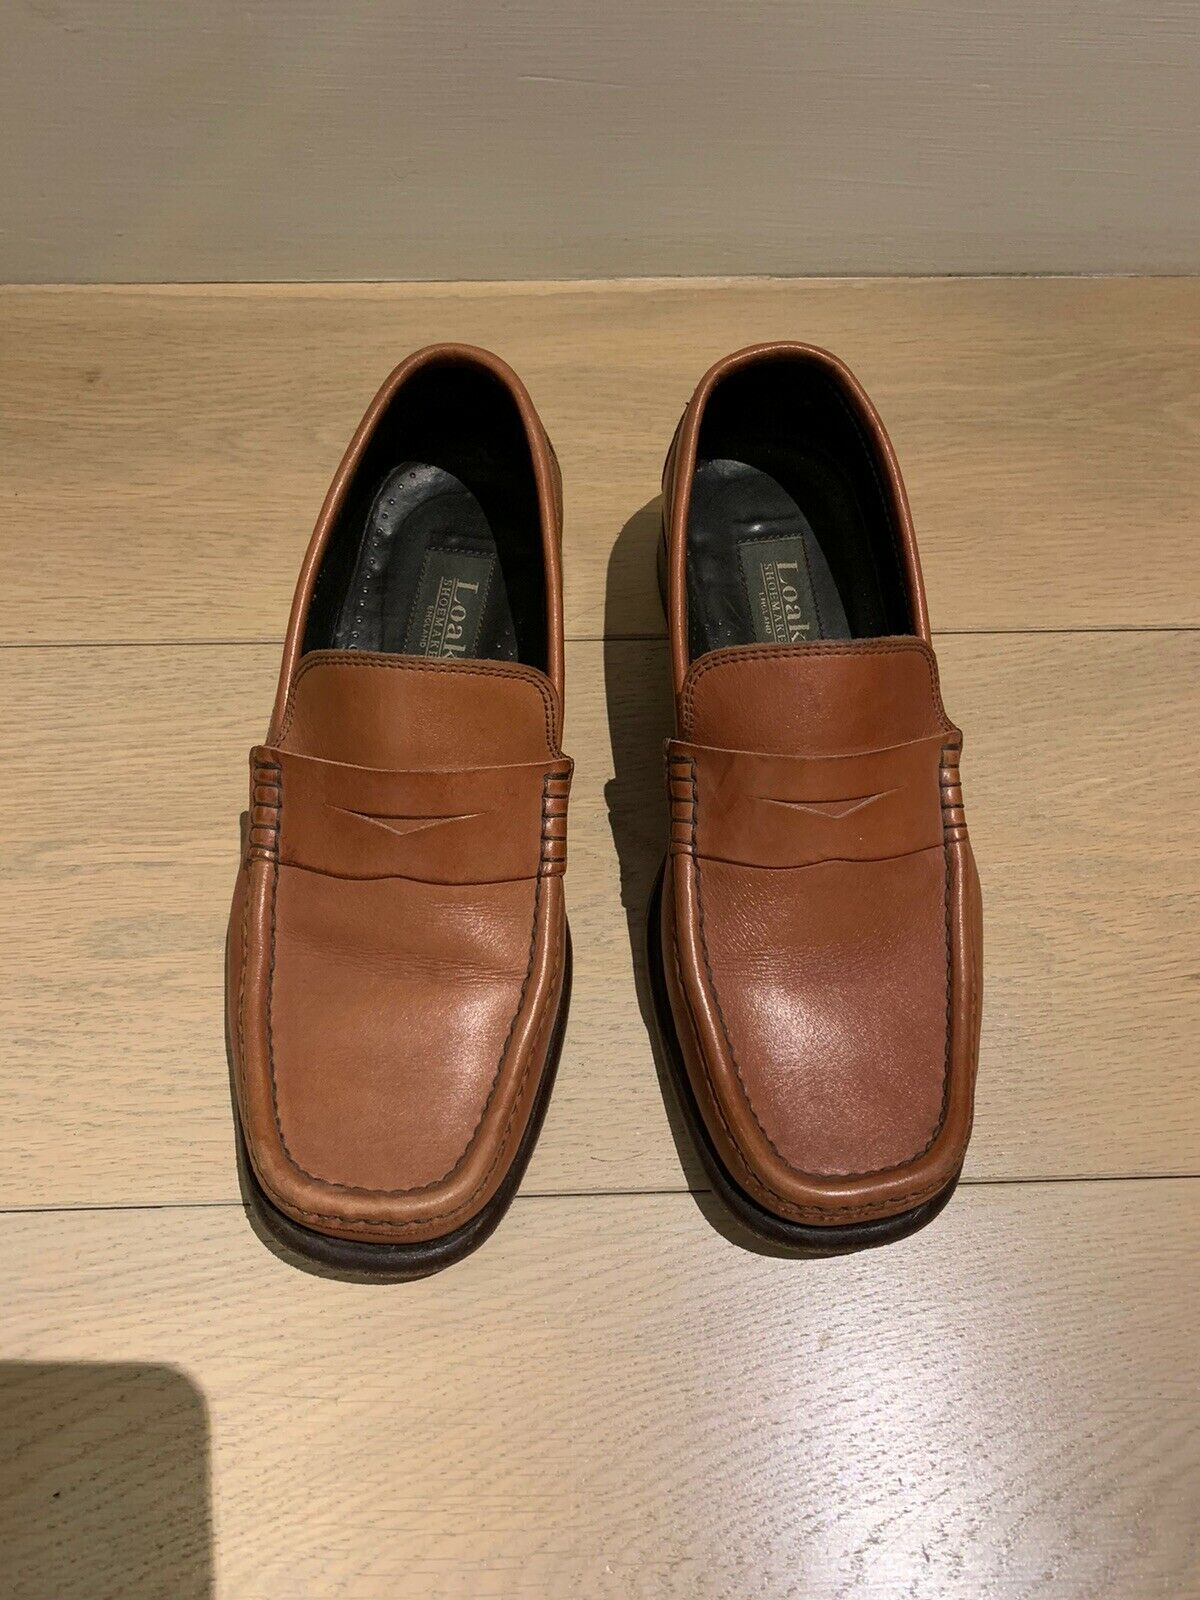 Loake Tan Loafers Size 6.5